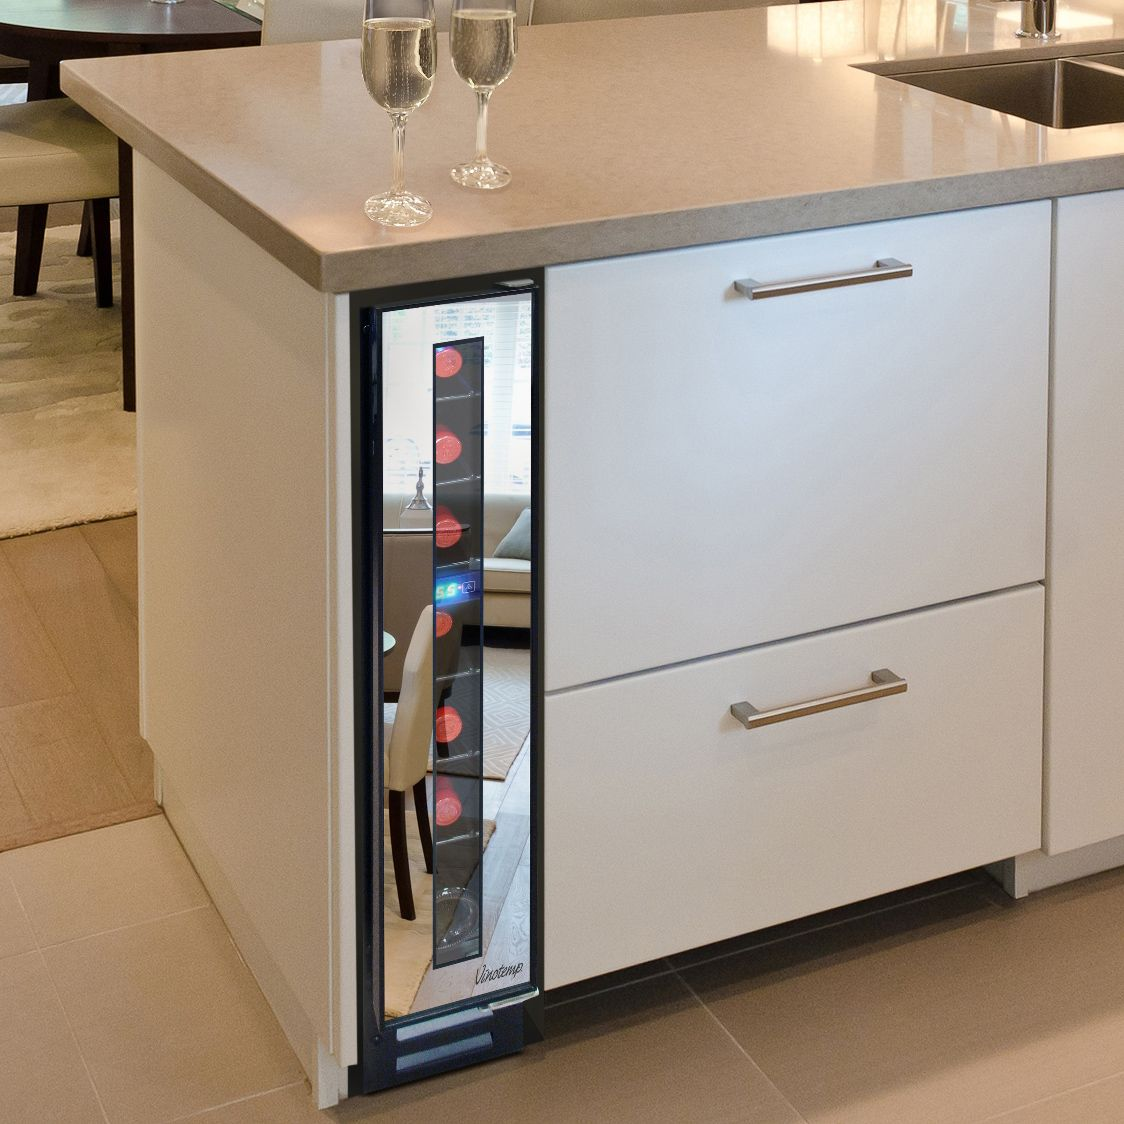 Narrow Wine Cooler By Vinotemp Saves Space And Looks Cool Small Wine Fridge Wine Cabinets Modern Kitchen Design